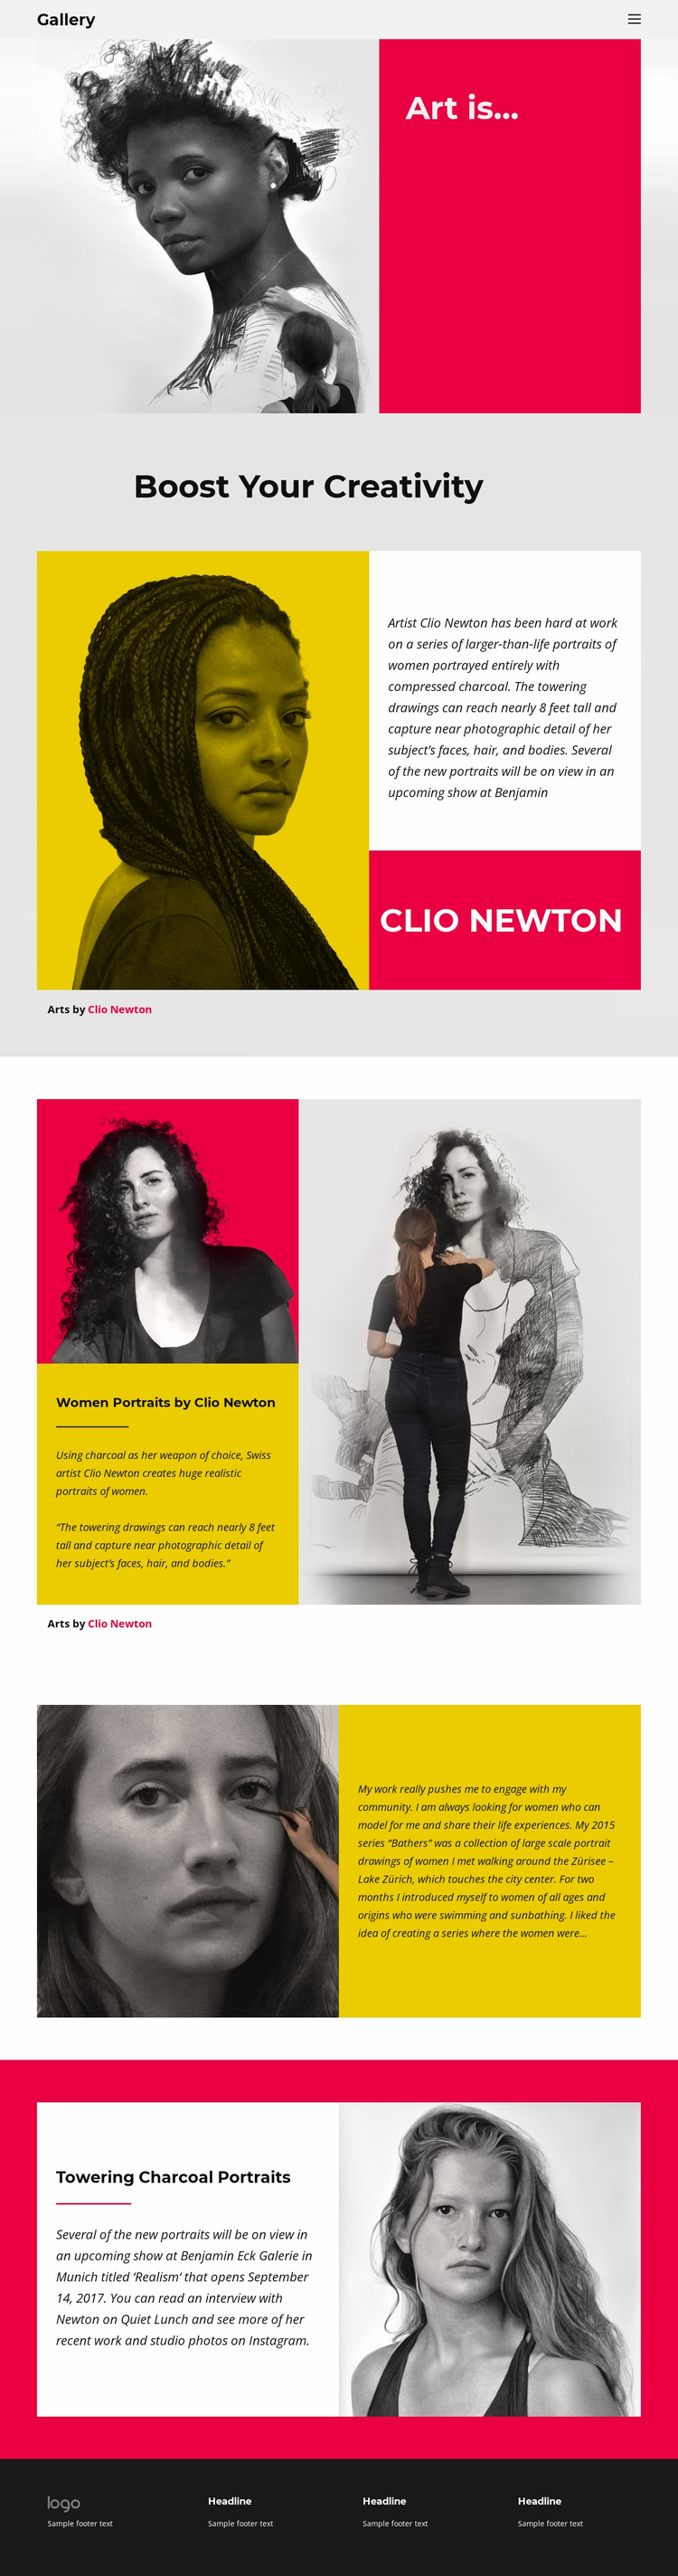 Drawing charcoal portraits Website Template